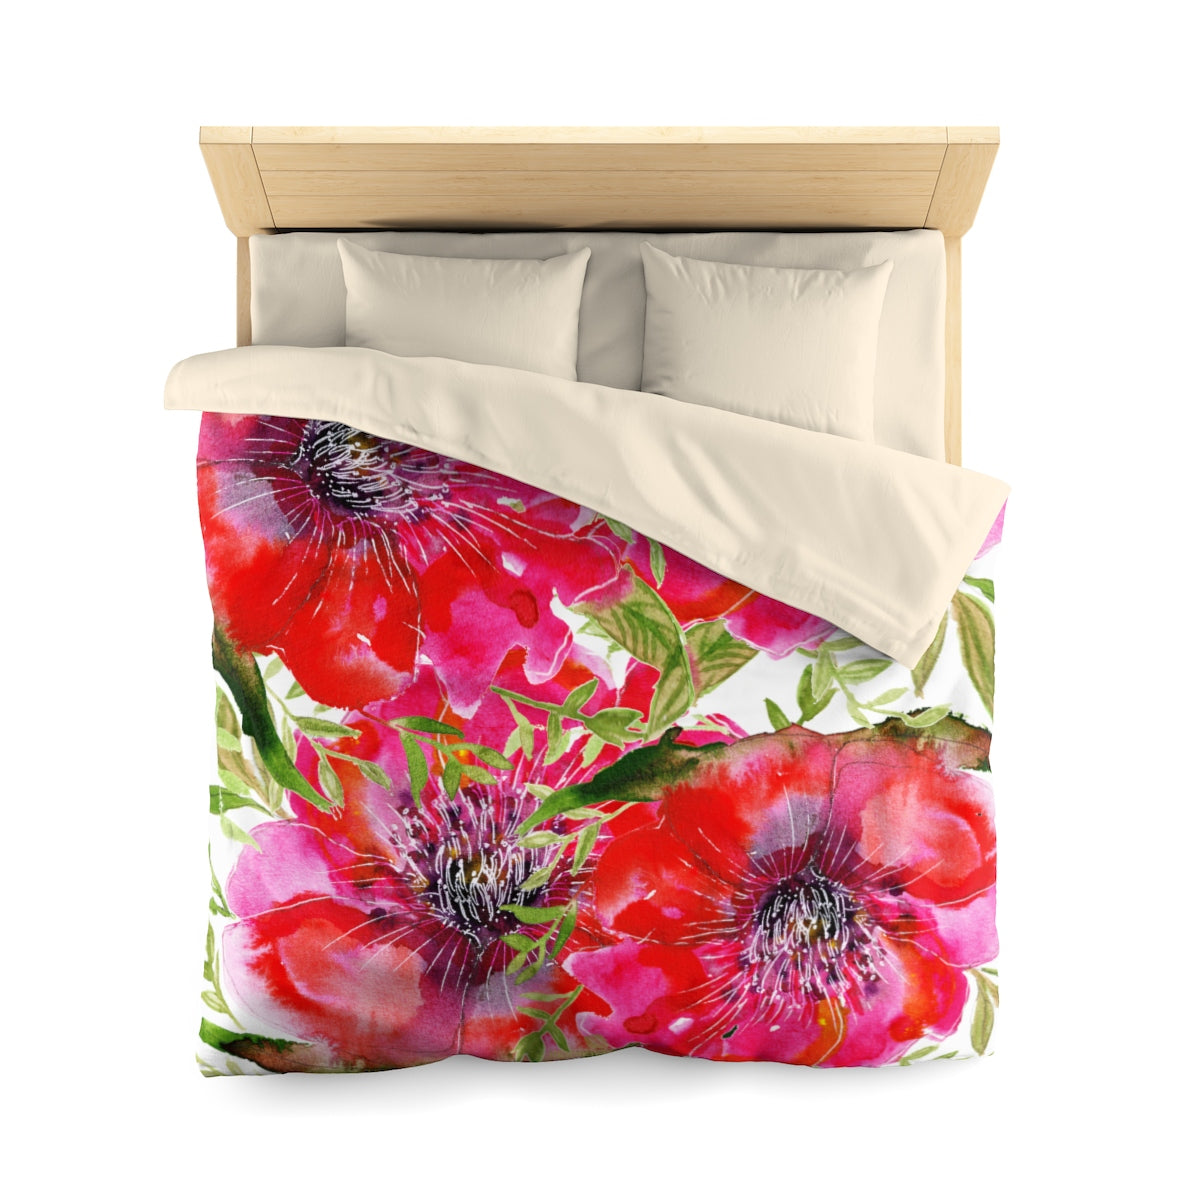 Hot Red Hibiscus Flower Floral Print Soft Polyester Microfiber Duvet Cover - Made in USA-Duvet Cover-Queen-Cream-Heidi Kimura Art LLC